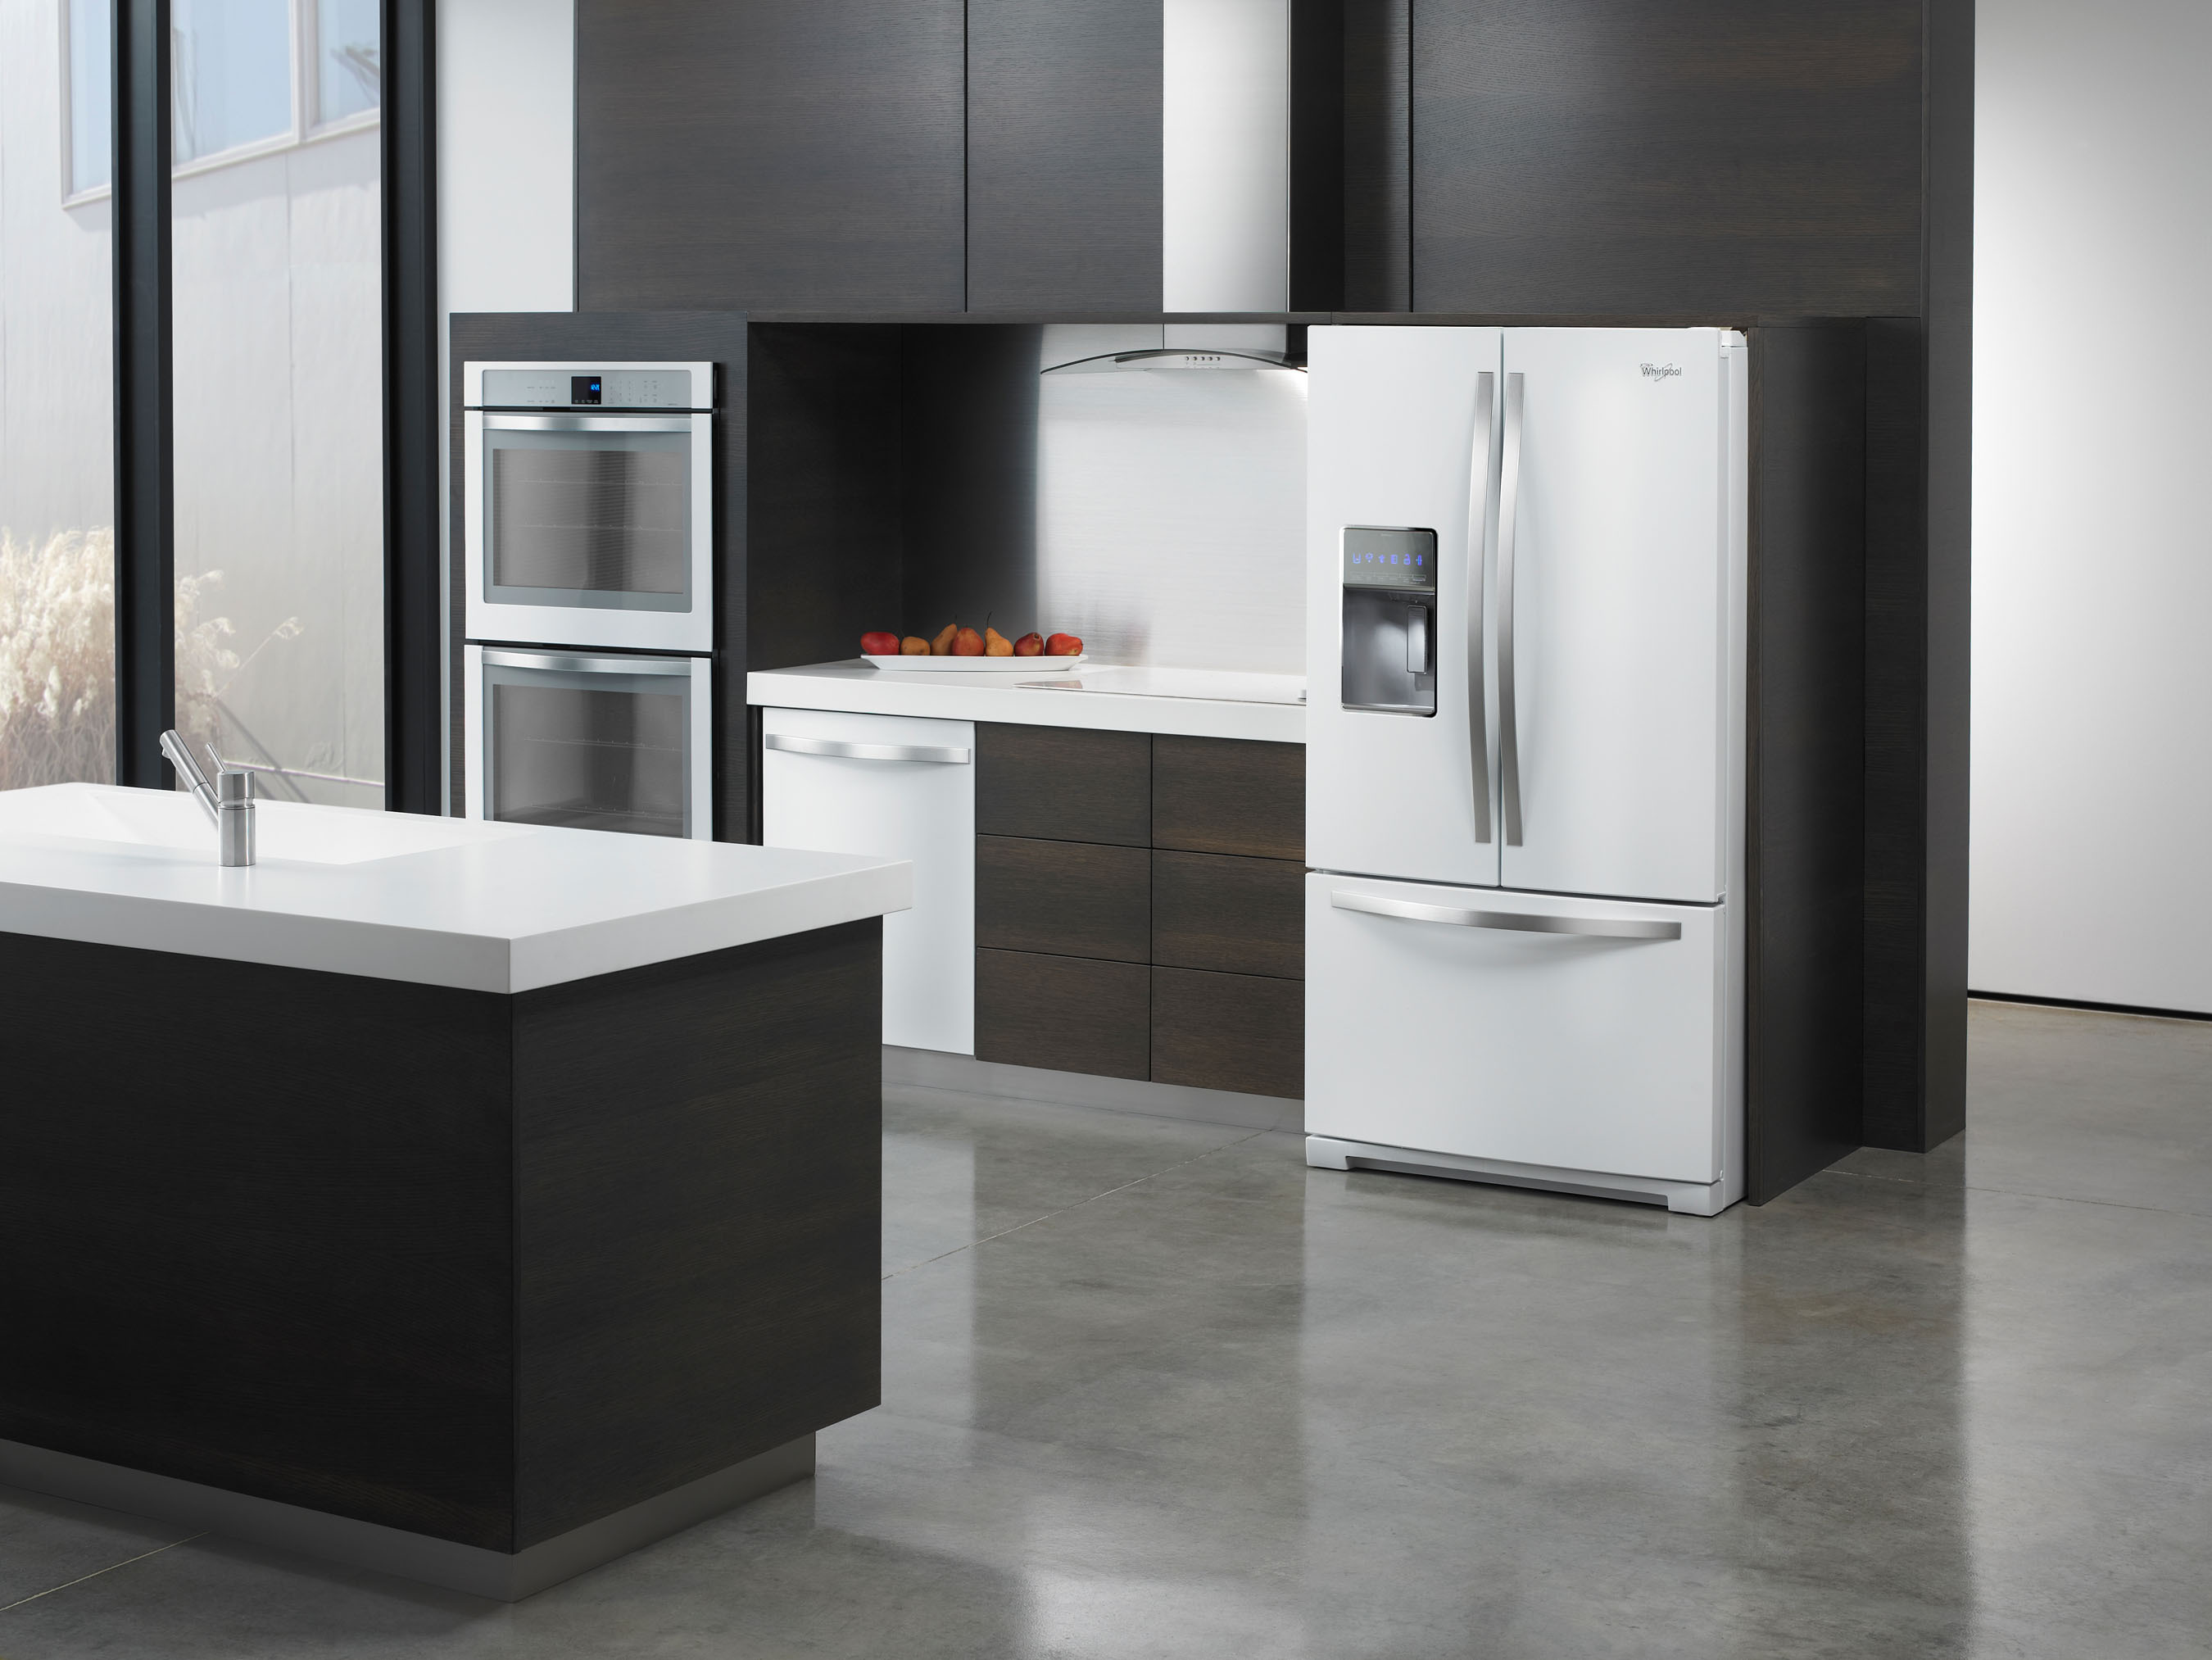 Uncategorized White Ice Kitchen Appliances whirlpool introduces a new finish for premium kitchens bake real white ice